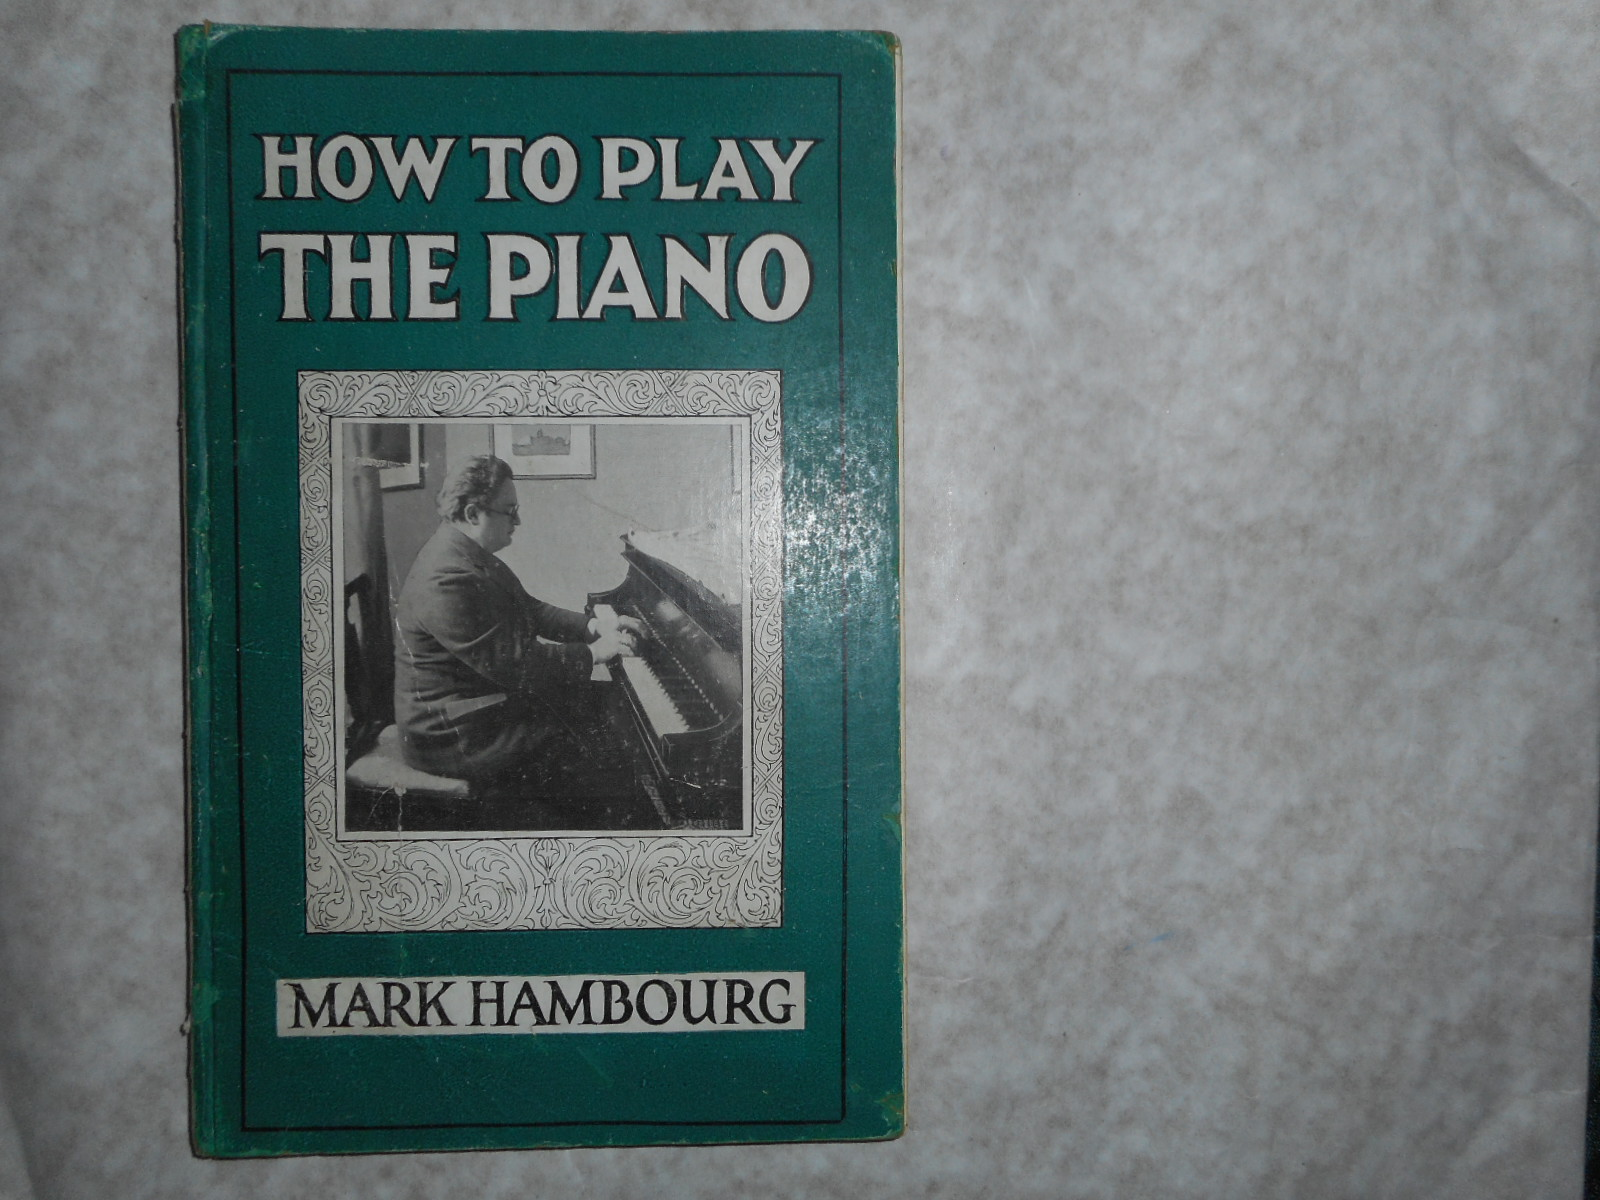 Image for How To Play Piano. With Practical Illustrations and Diagrams and an Abridged Compendium of Five-Finger Exercises, Scales, Thirds, Arpeggi, Octaves As Practised by Him